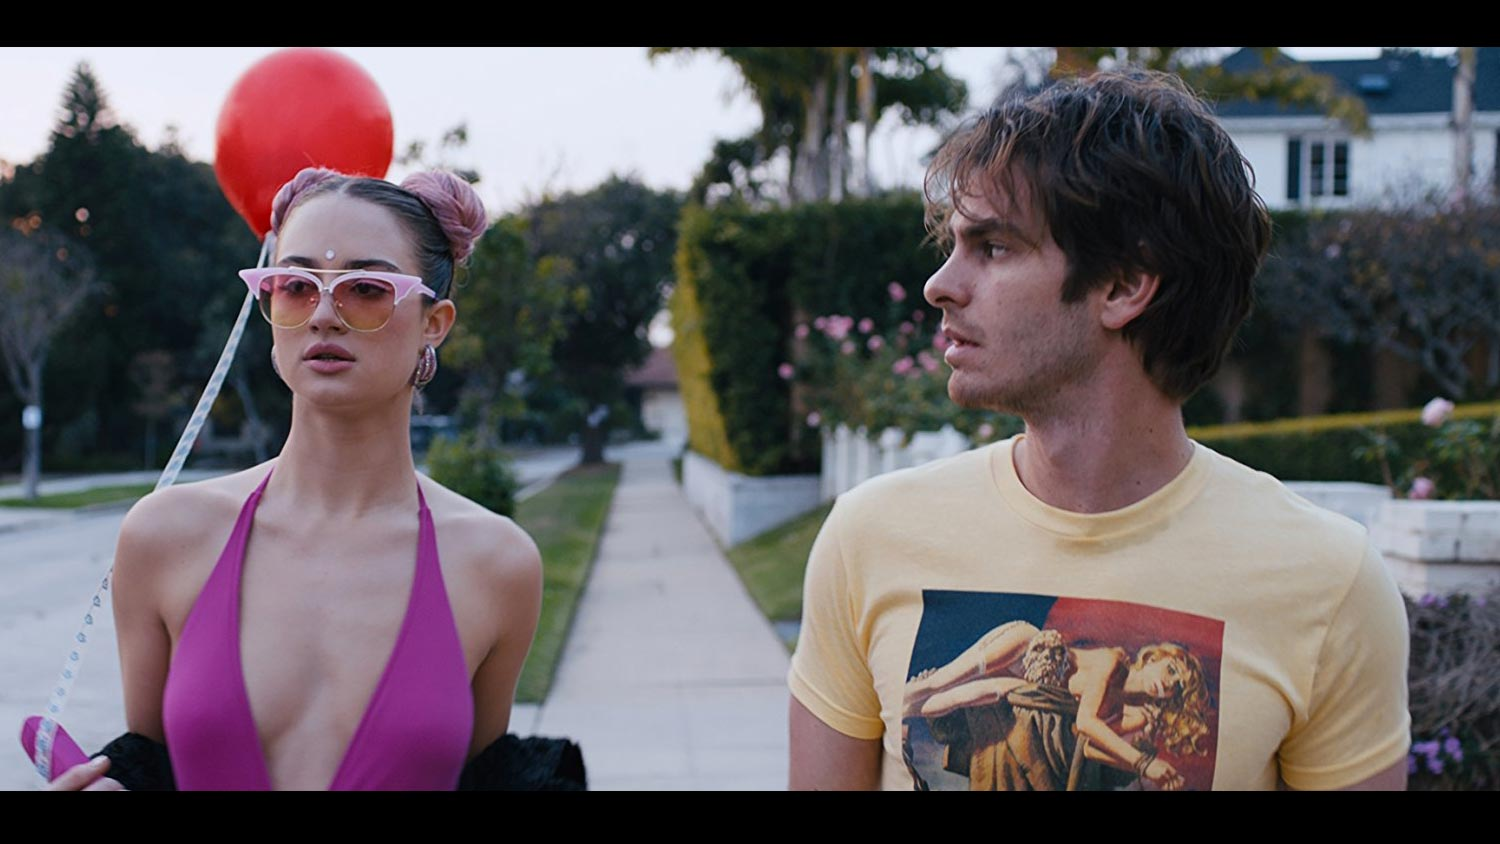 Under The Silver Lake Review – A Psychedelic Trip To Everywhere And Nowhere - OC Movie Reviews - Movie Reviews, Movie News, Documentary Reviews, Short Films, Short Film Reviews, Trailers, Movie Trailers, Interviews, film reviews, film news, hollywood, indie films, documentaries